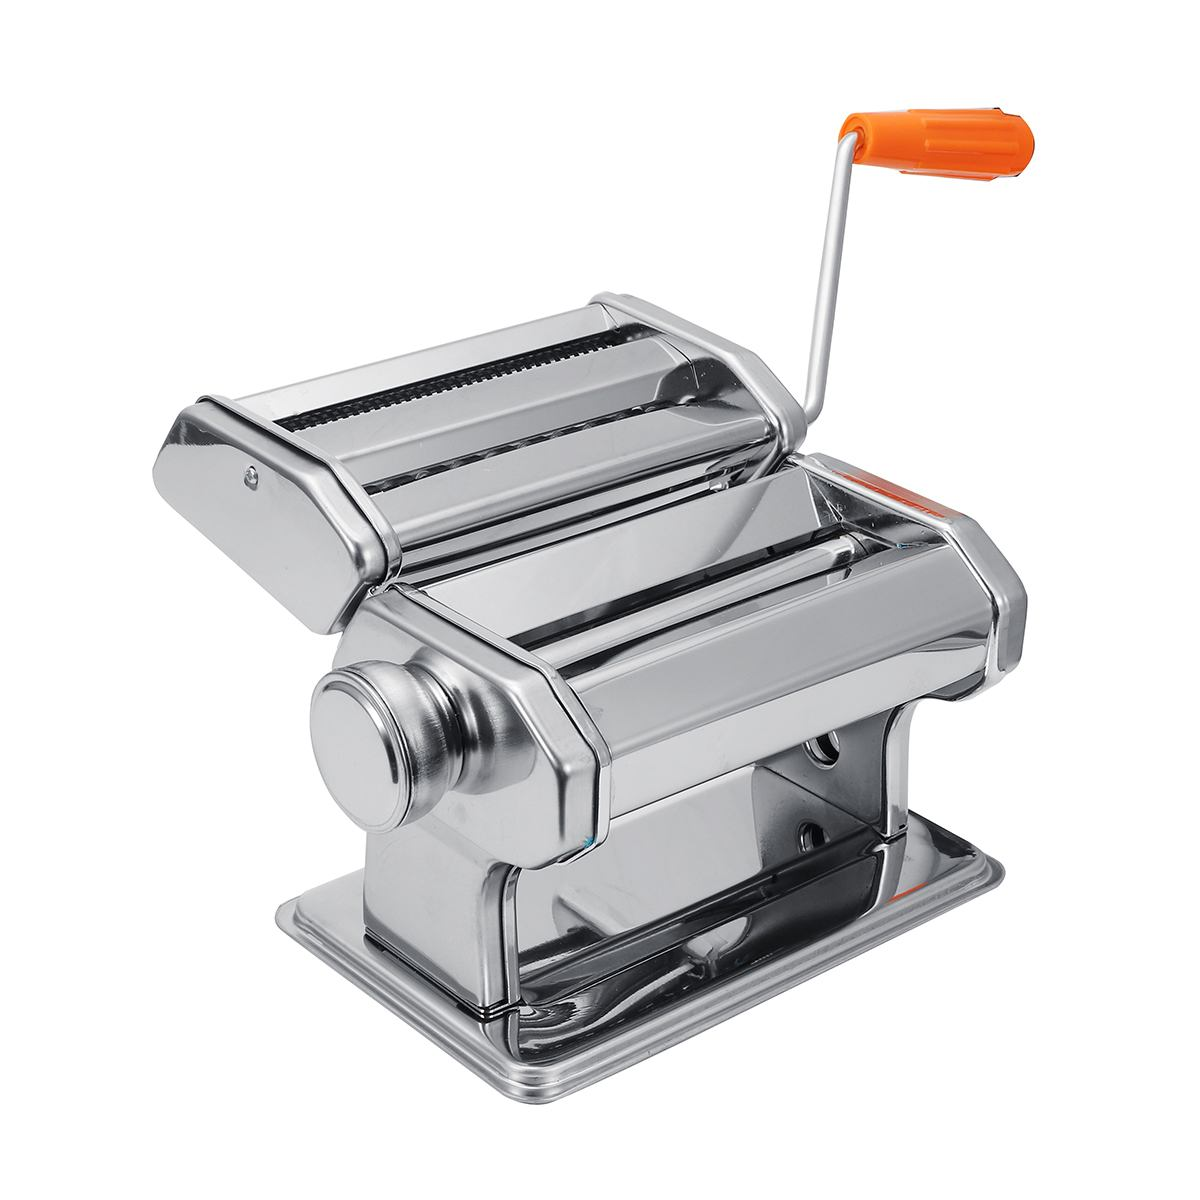 Stainless Steel Fresh Pasta Maker Roller Machine For Spaghetti Noodle Fettuccine Dumpling Maker Noodle-Maker Roller-Machine